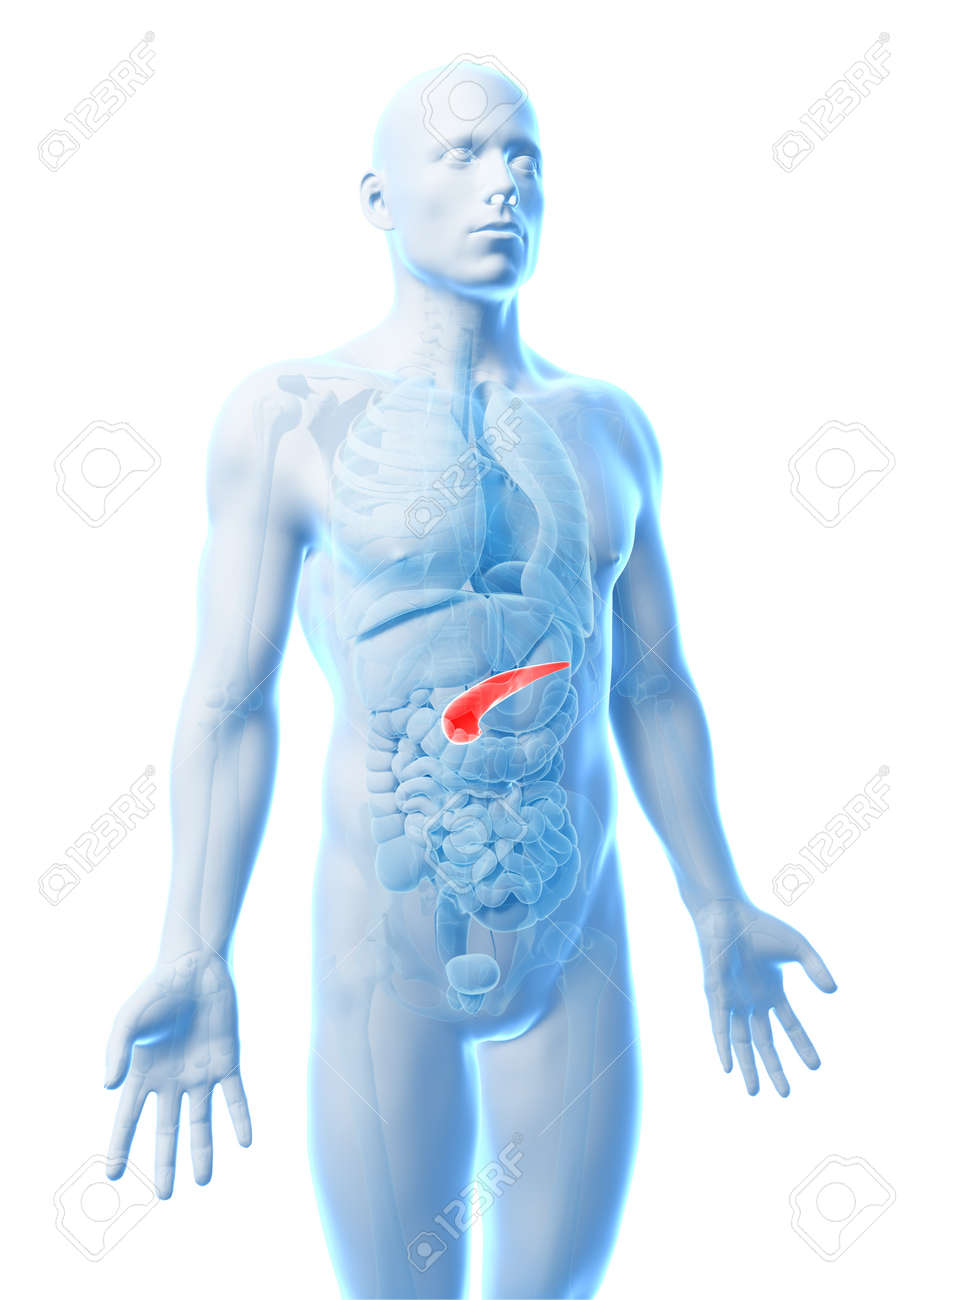 3d Rendered Illustration Of The Human Pancreas Stock Photo, Picture ...